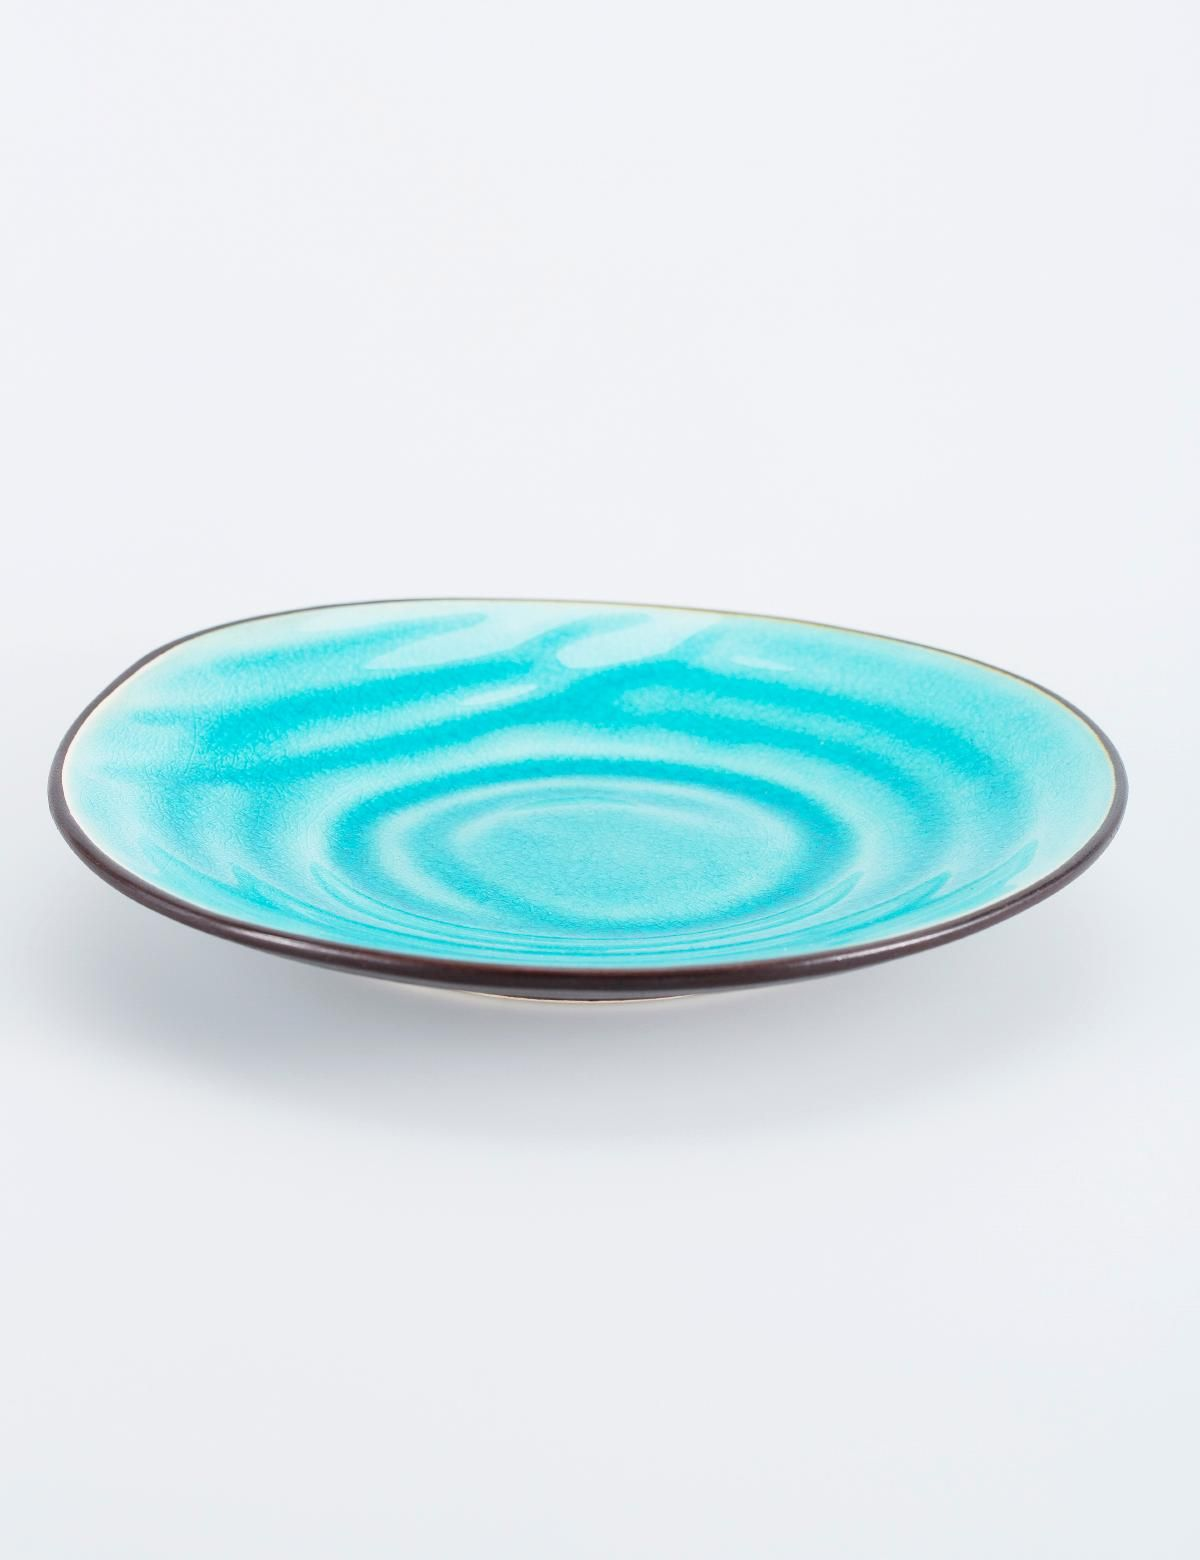 Crackle Assiett Turkos Plates Ceramic Glass Glas Porslin Inredning Indiska Shop Online Porslin Turkos Inredning